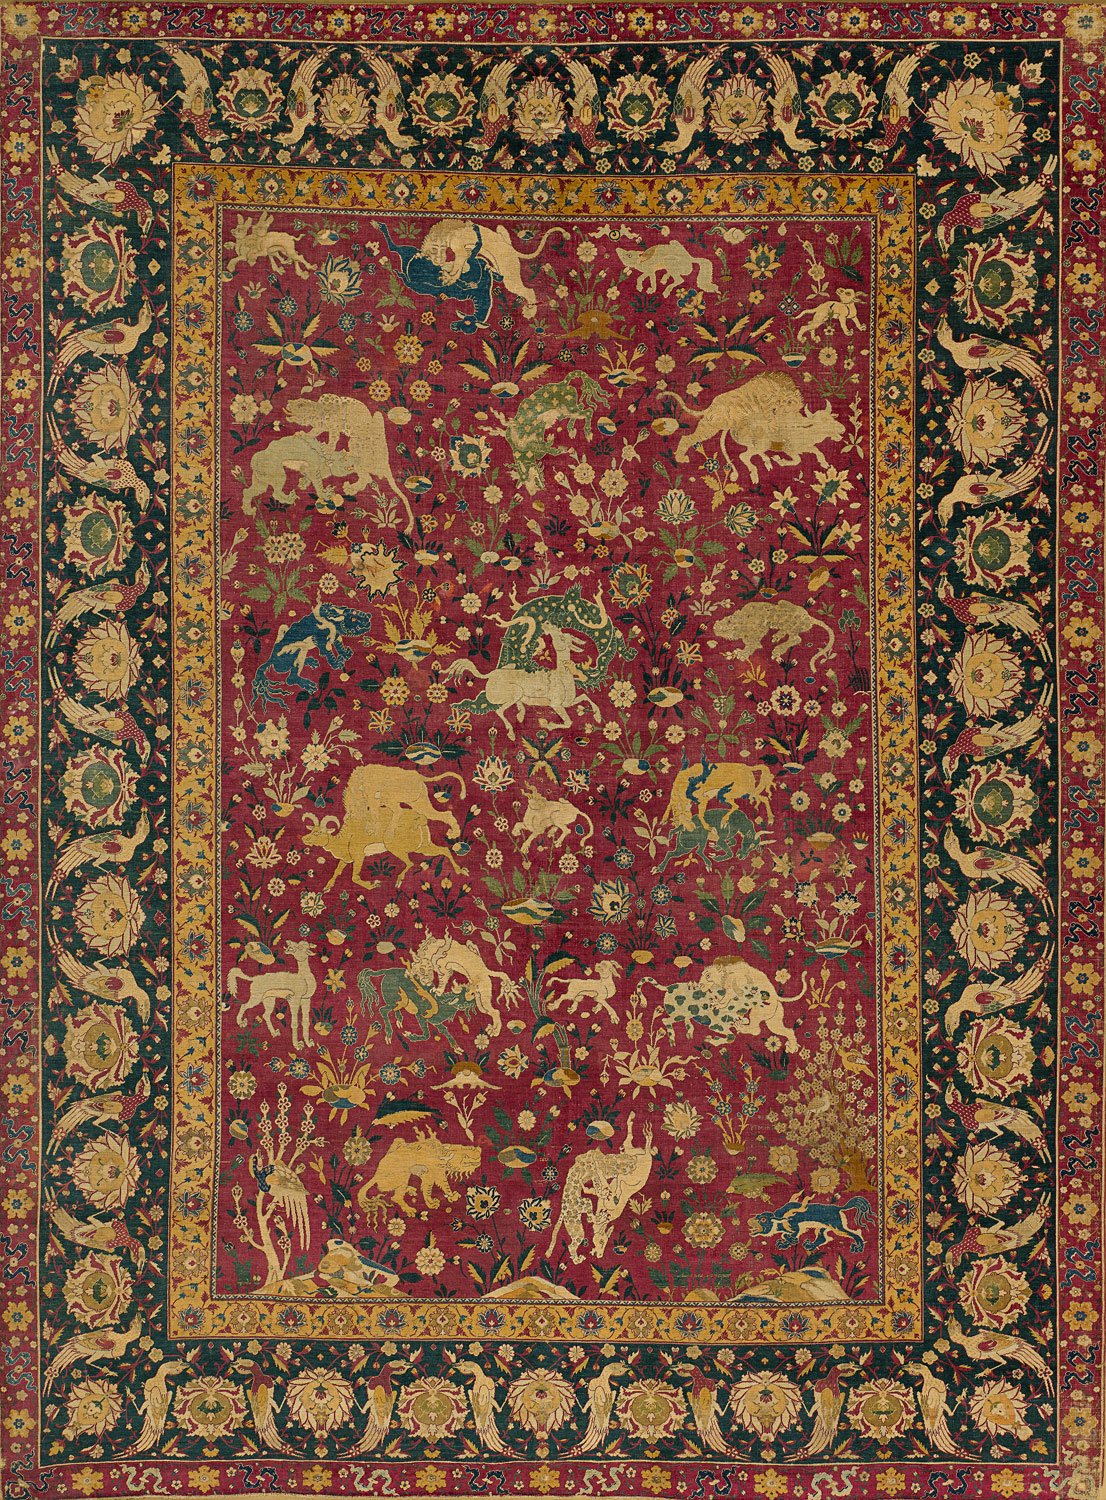 Silk Animal Carpet Work Of Art Heilbrunn Timeline Of